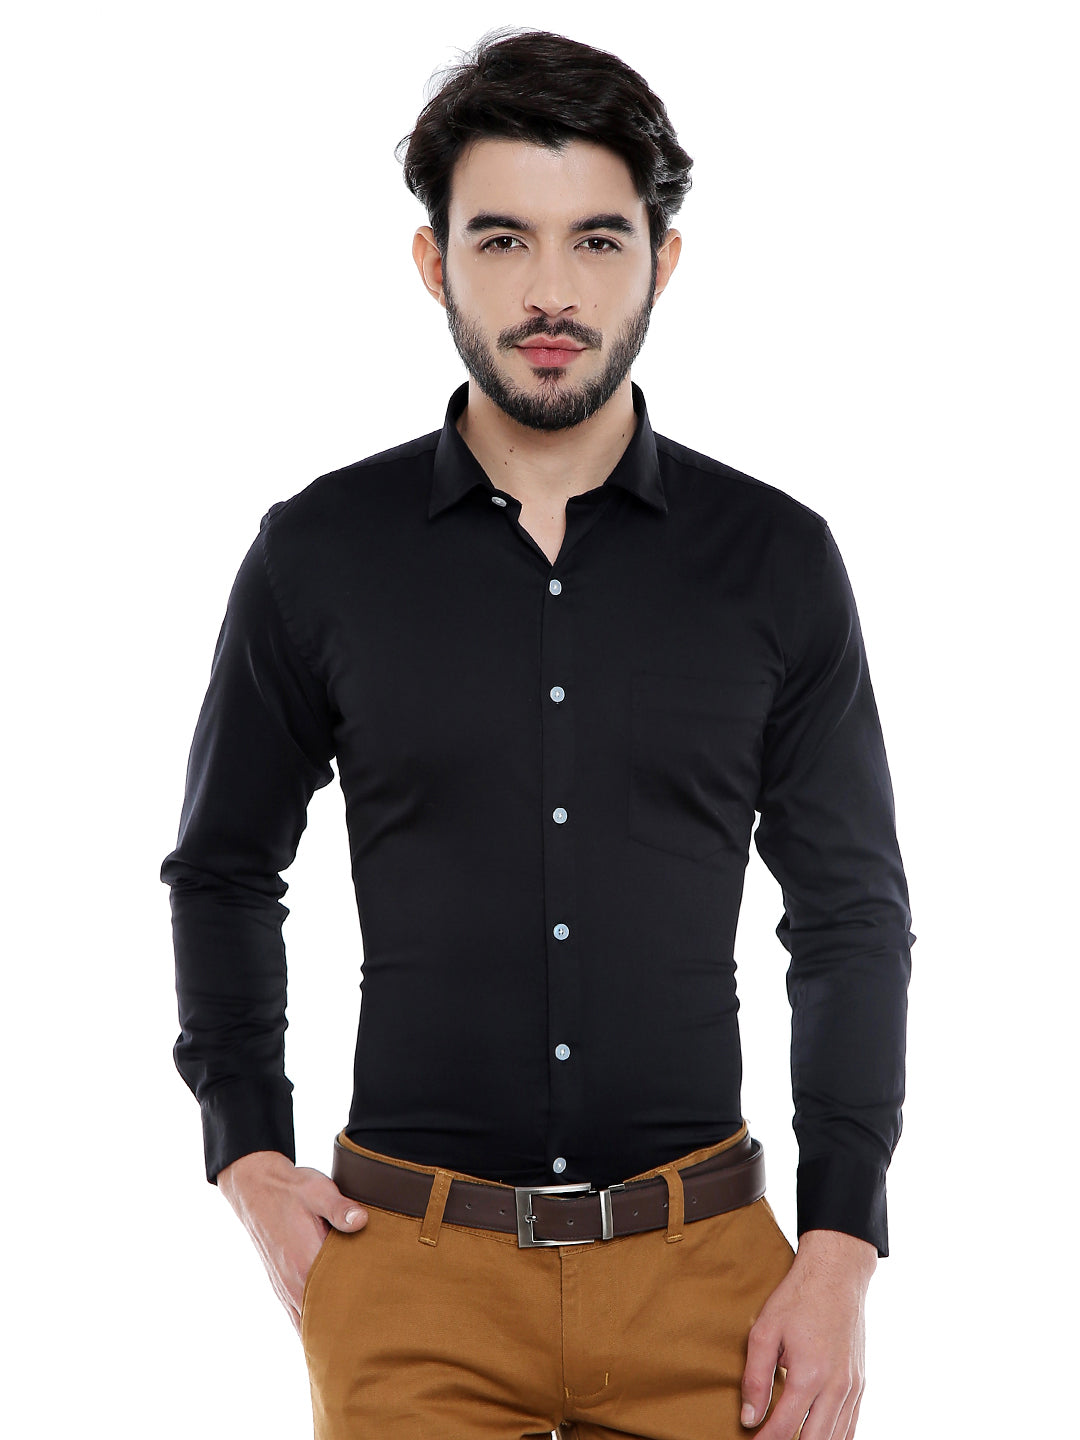 ZIDO Cotton Satin Stretch  Solid Men's Shirt